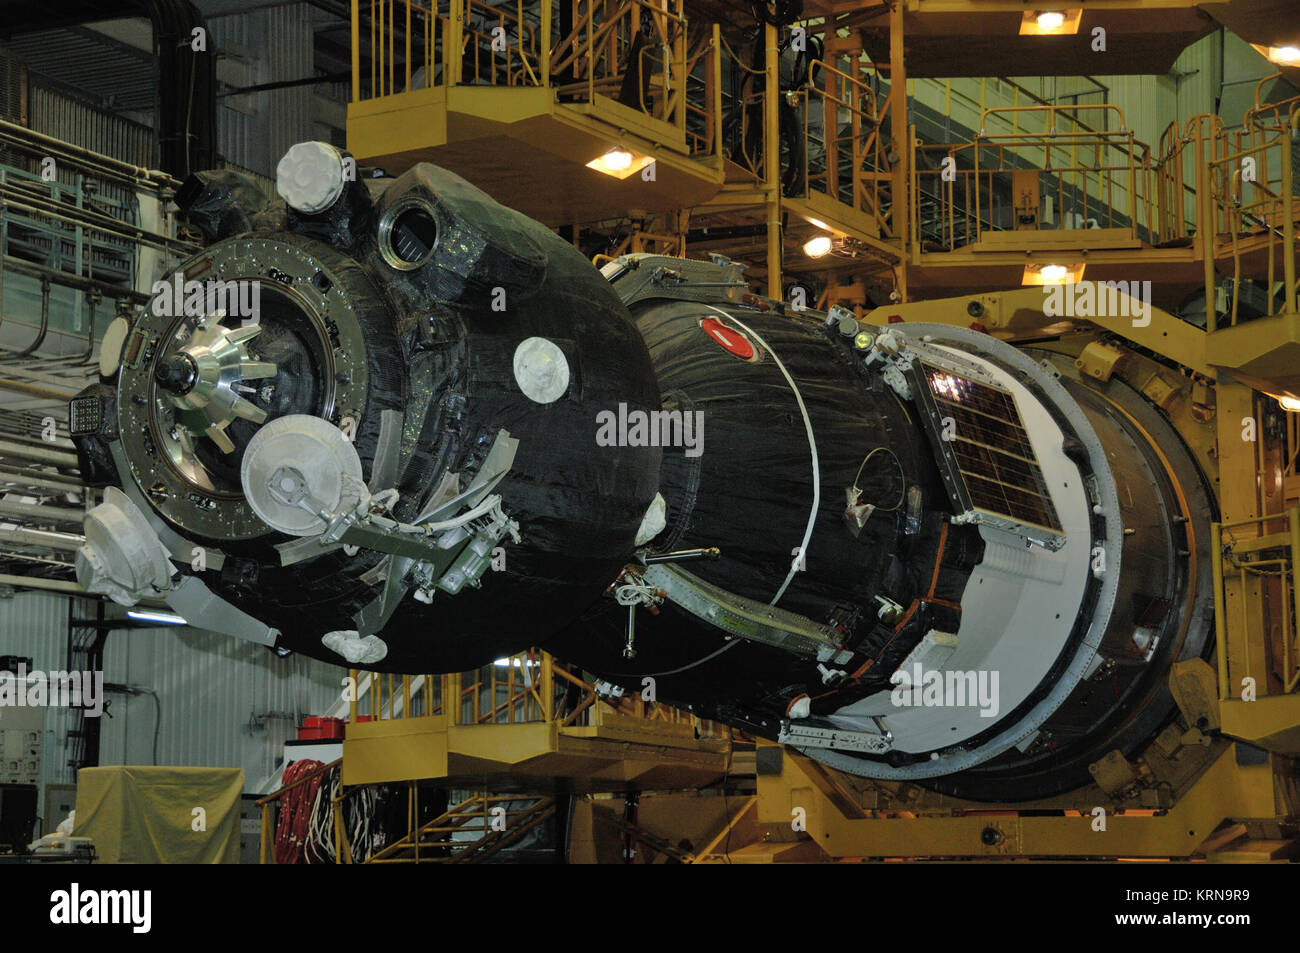 In the Integration Facility at the Baikonur Cosmodrome in Kazakhstan, the Soyuz MS-03 spacecraft sits in its horizontal - Stock Image